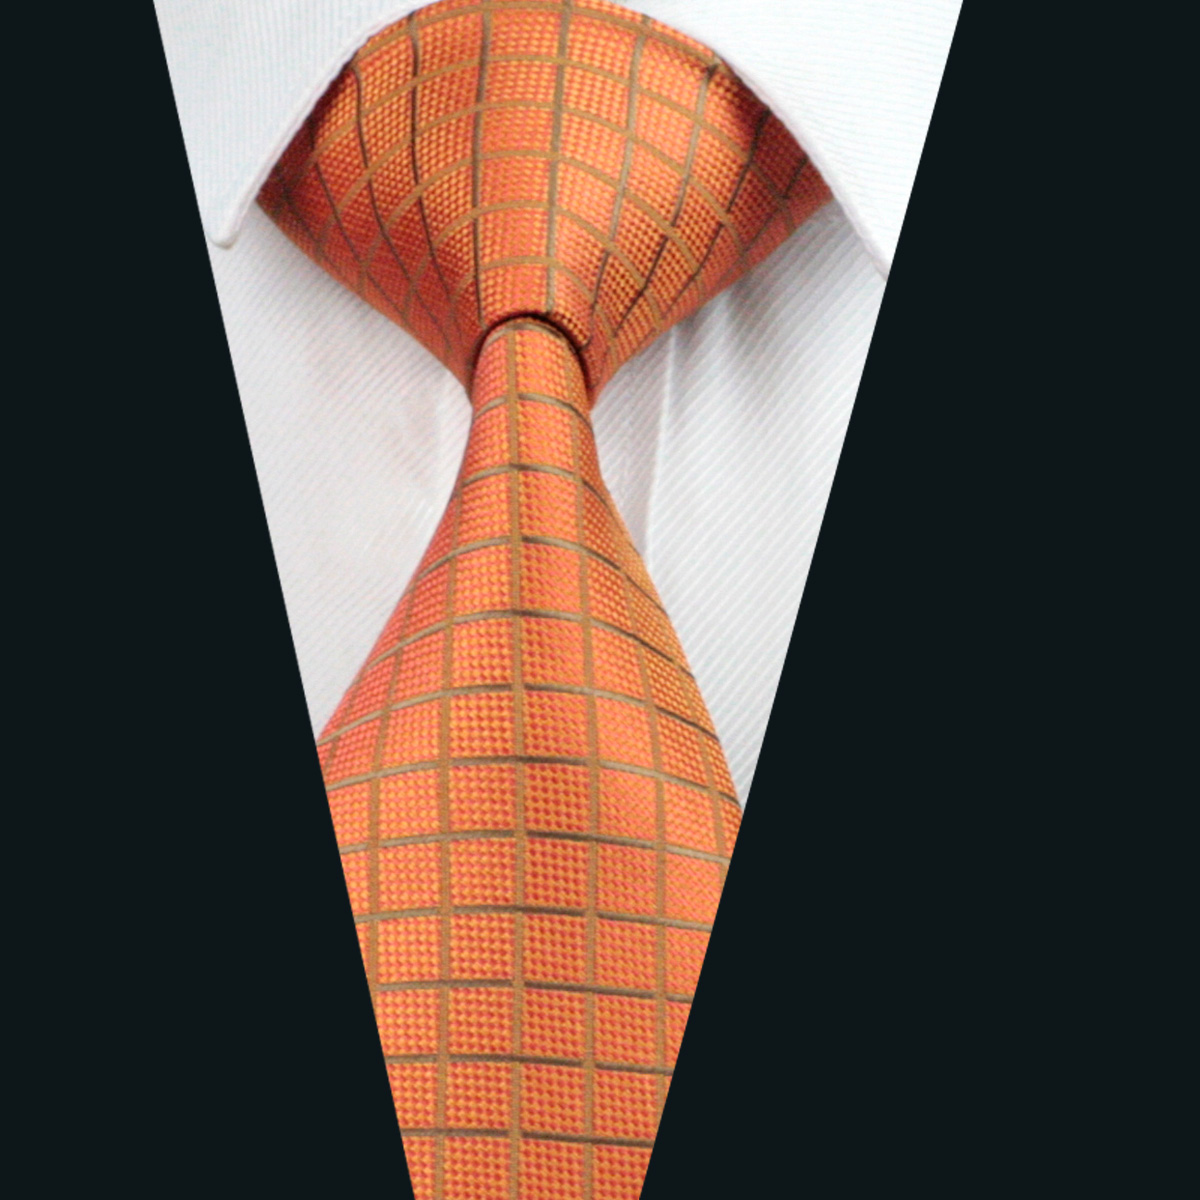 DH-464 Mens Silk Tie Orange Plaid NeckTie 100% Silk Jacquard Ties For Men Business Wedding Party Free Shipping